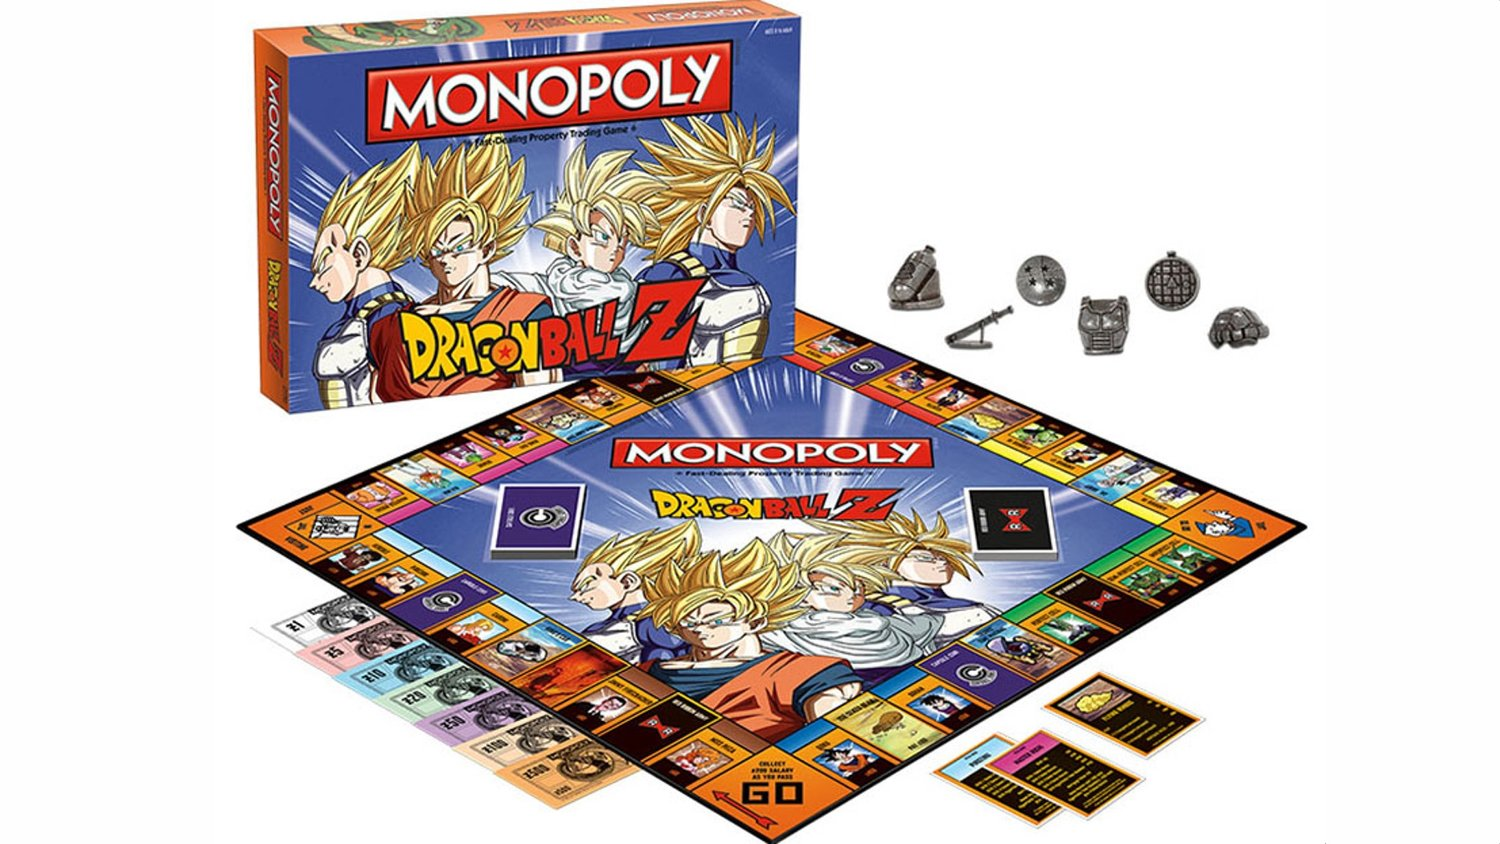 If Watching and Playing DRAGON BALL Z Isn't Enough, Here's DRAGON BALL Z Monopoly!